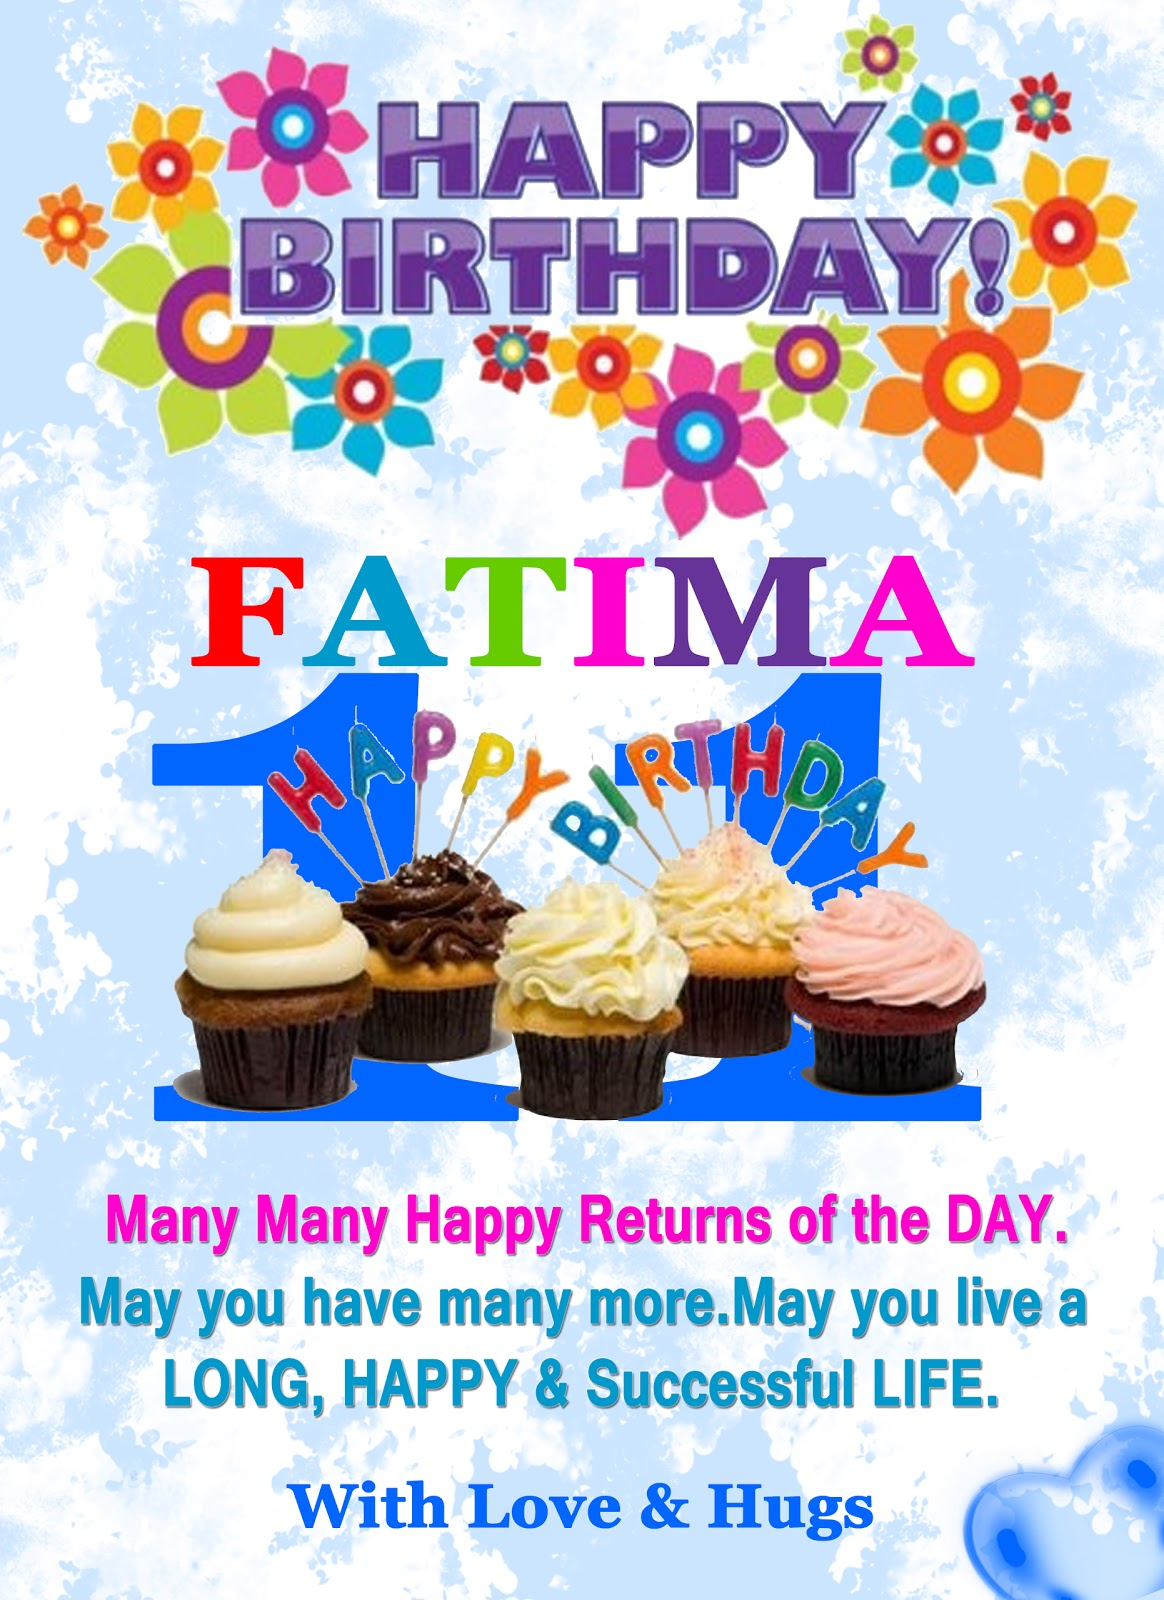 Happy Birthday Fatima Zafar ~ AMNA ZAFAR (AIMZ)